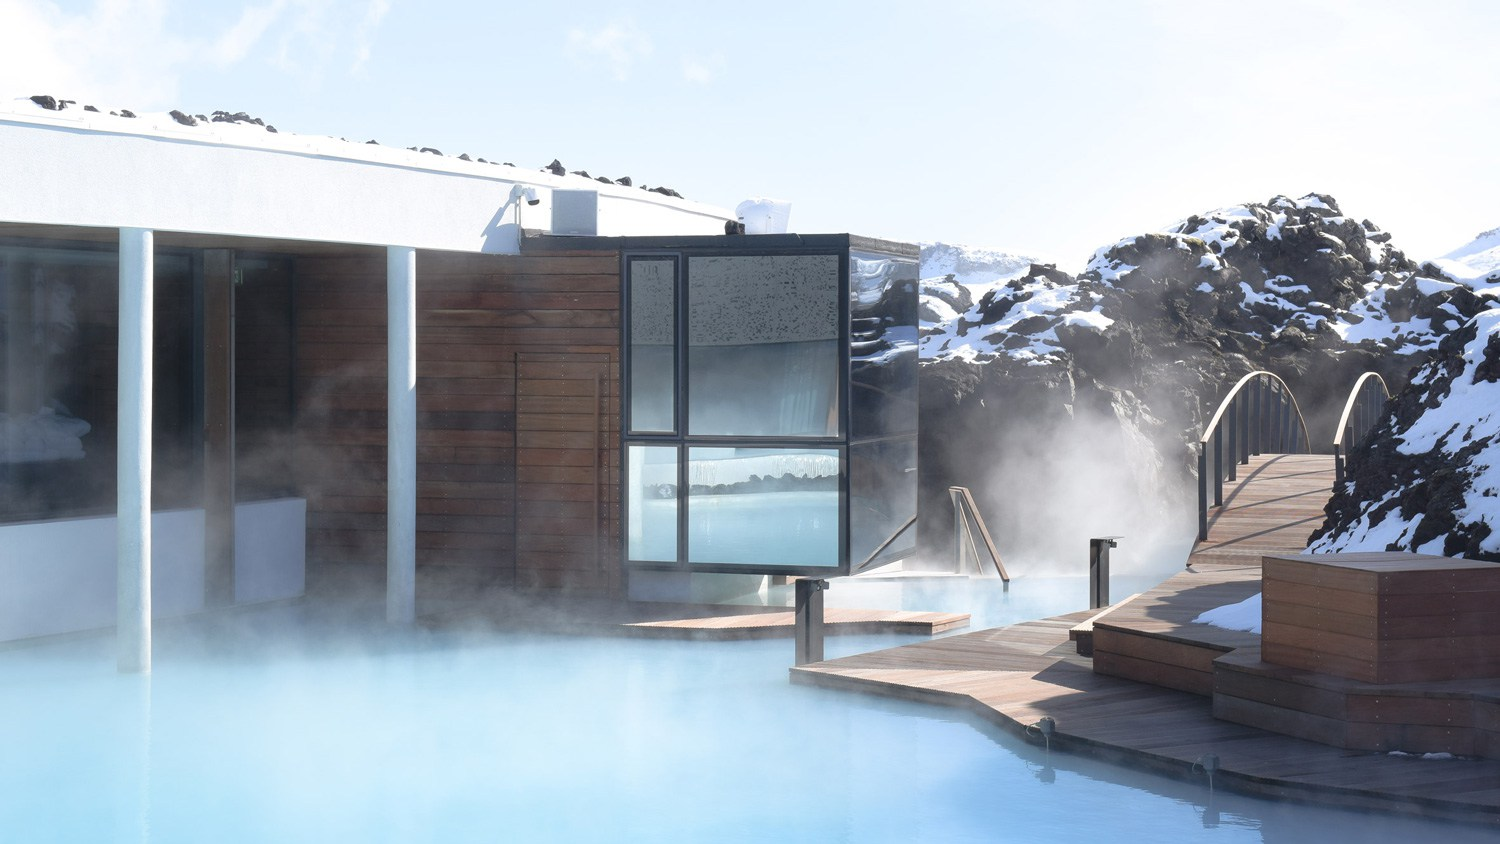 The-Retreat-Hotel-at-Blue-Lagoon-in-Grindavik-Iceland-Yellowtrace-06